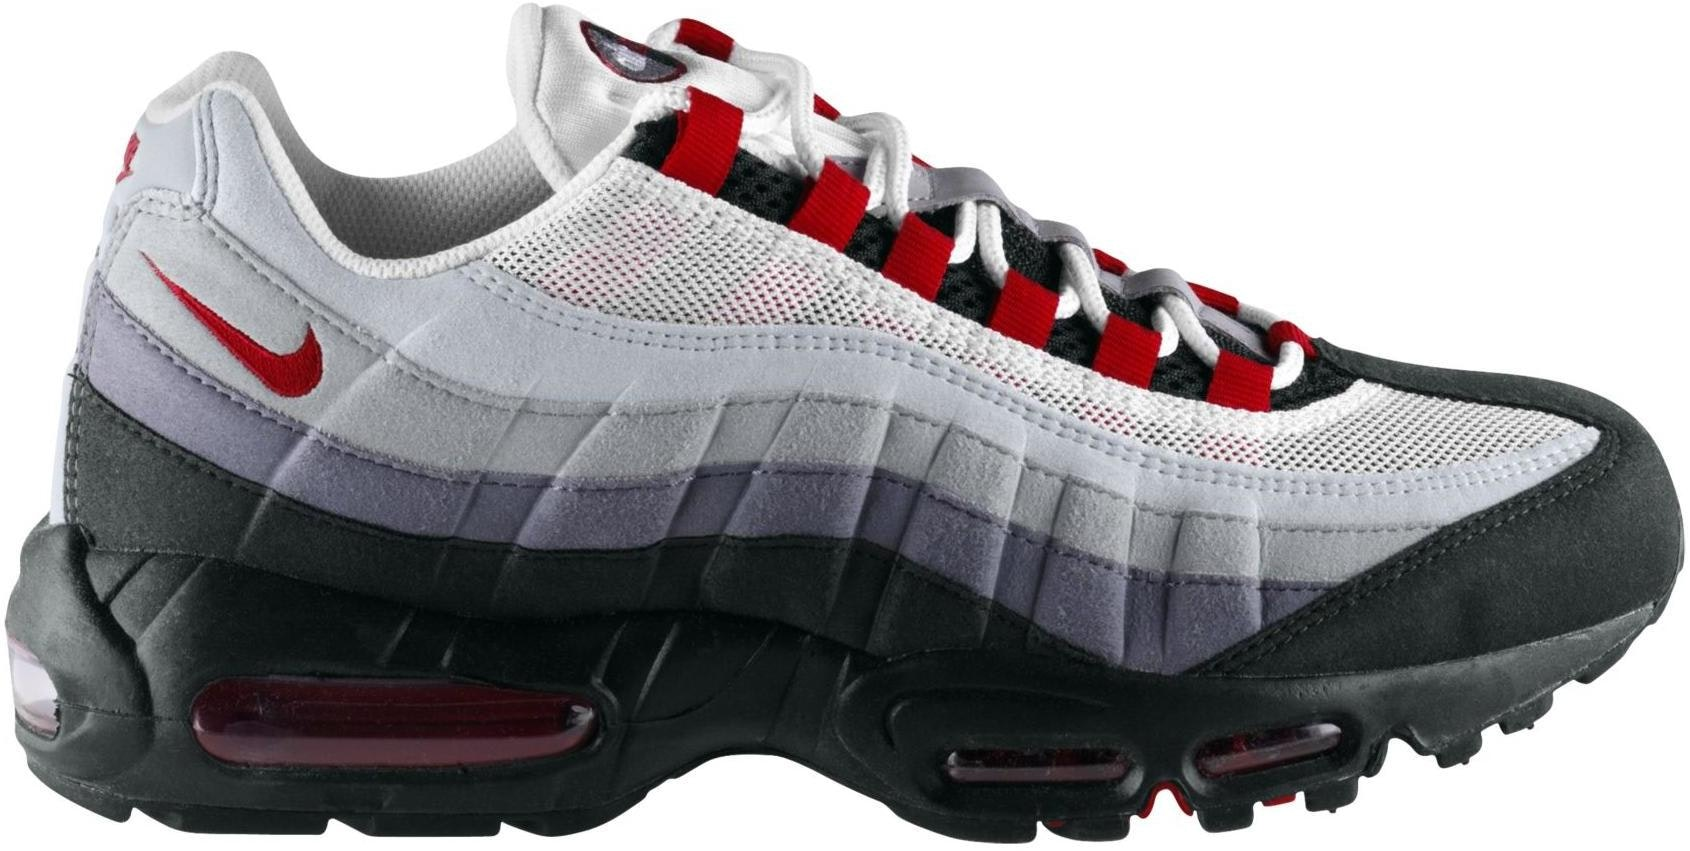 Air Max 95 Sport Red (2009)